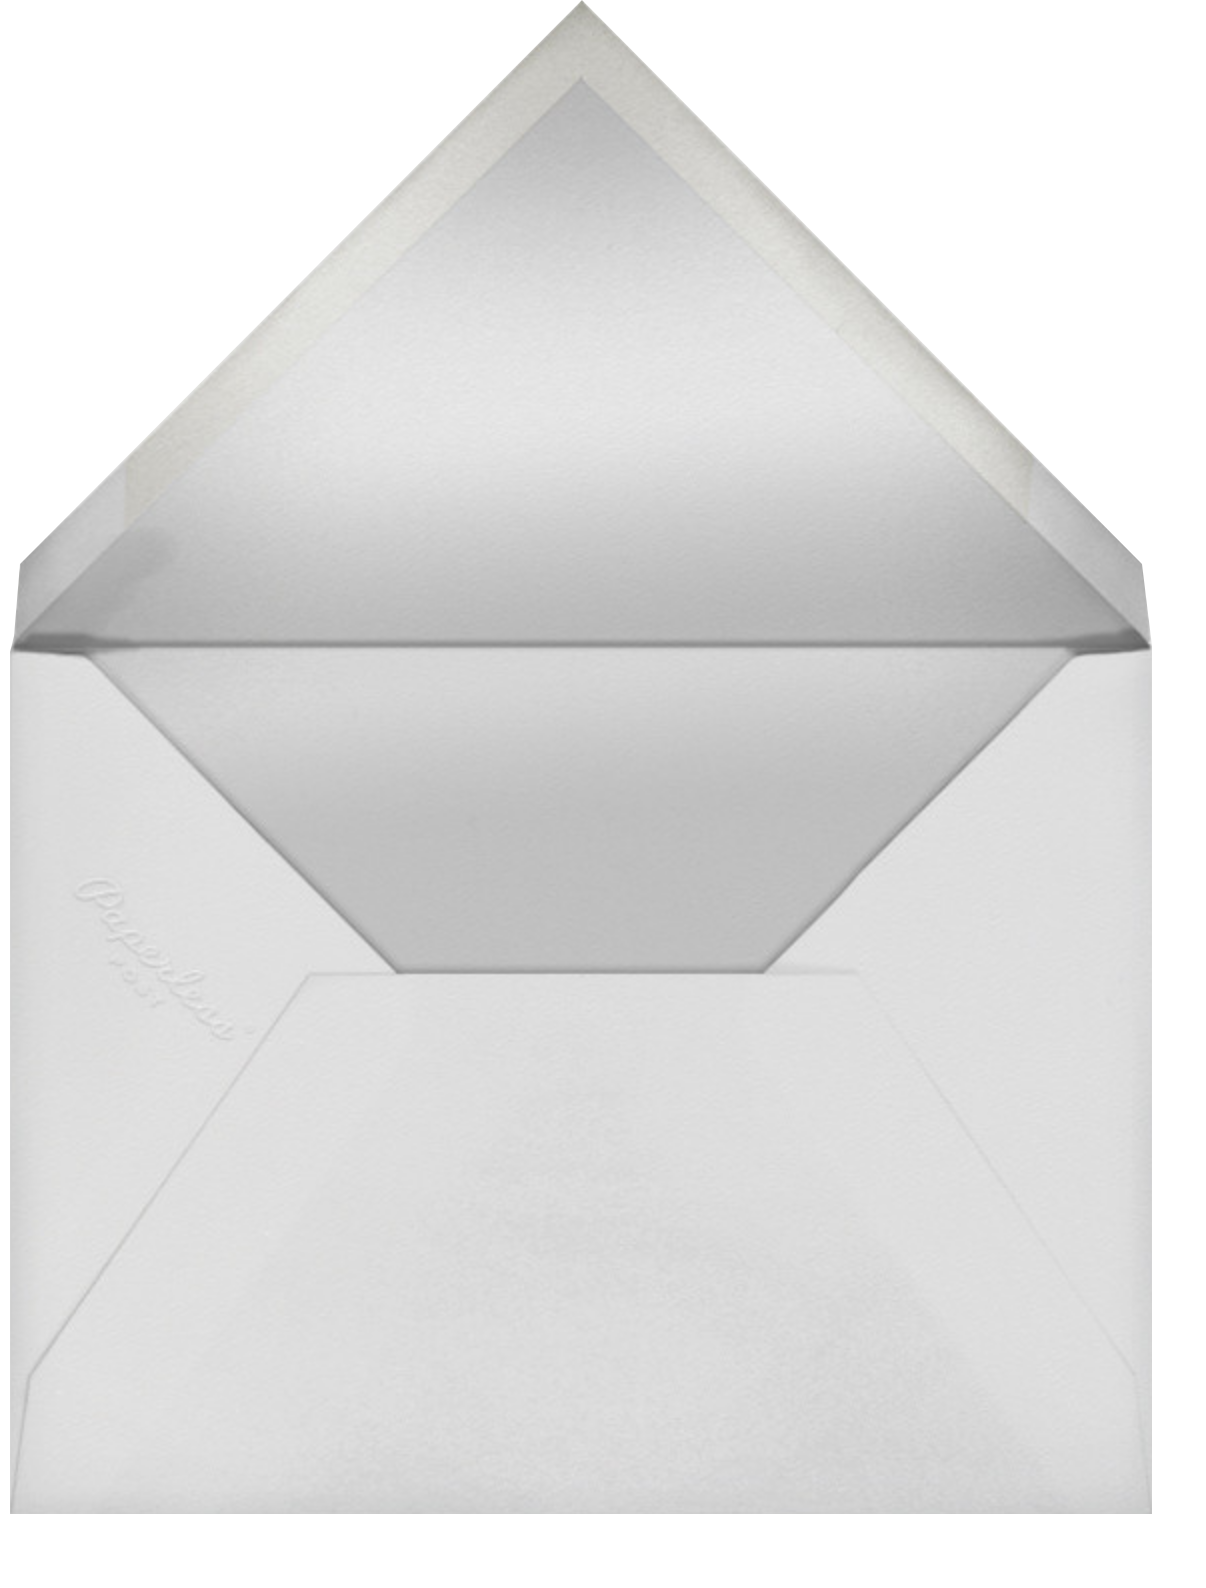 Employee of the Month - Paperless Post - Father's Day - envelope back